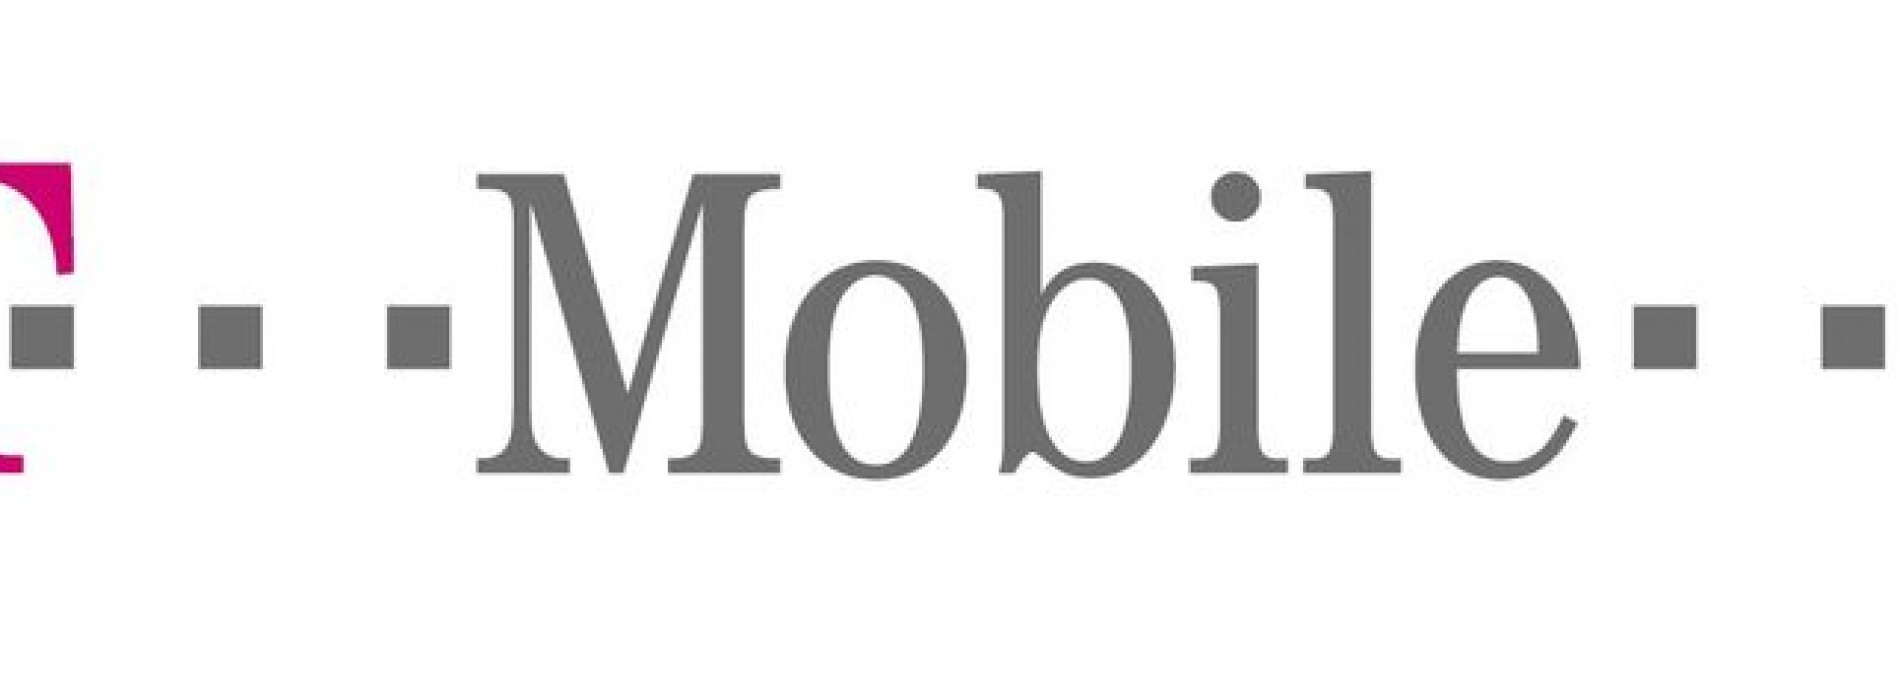 T-Mobile's Prepaid Data Plans Sneak Out